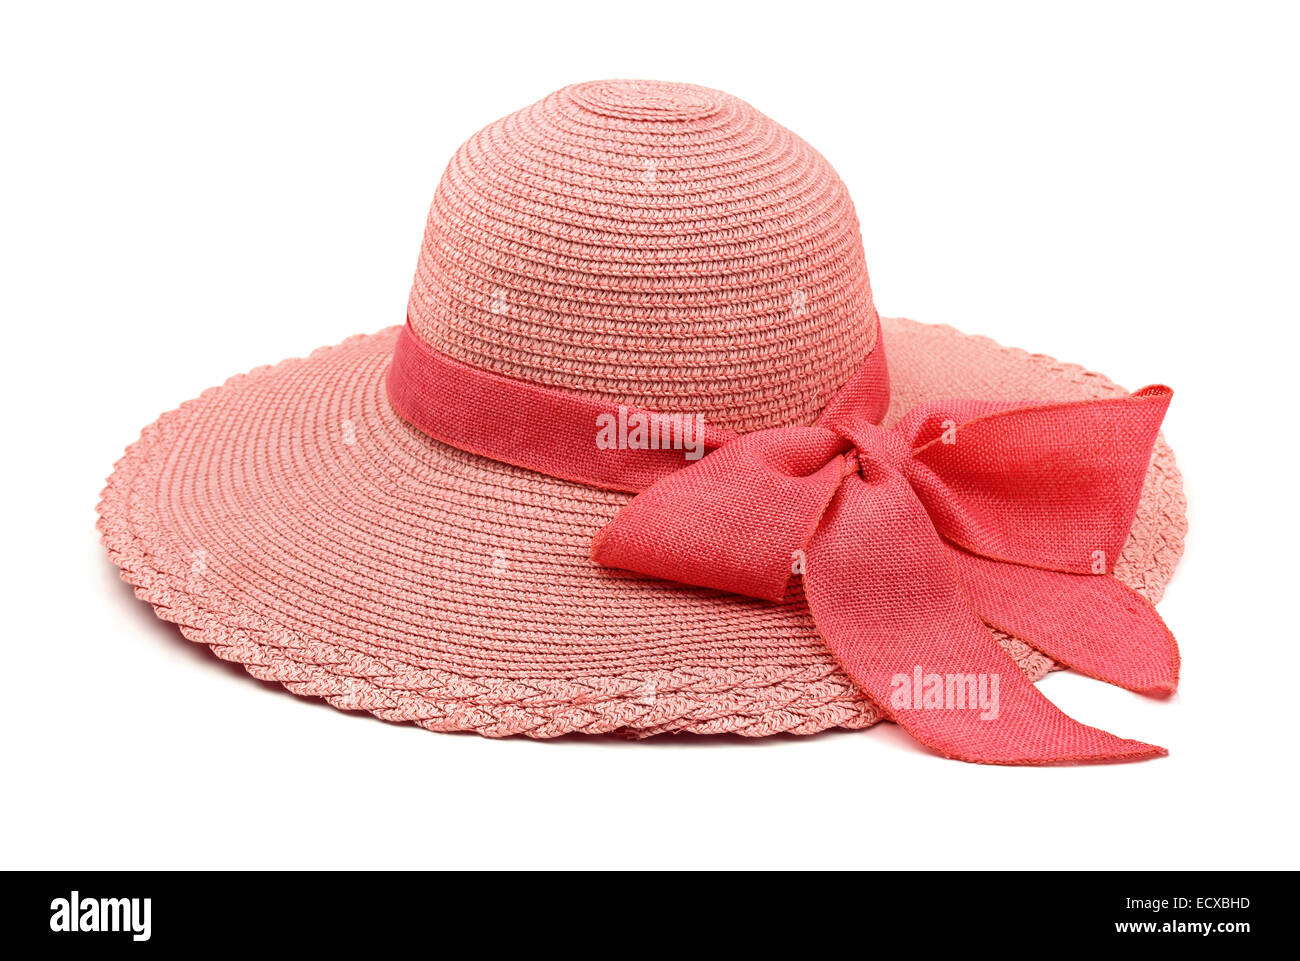 Pink straw hat with bow isolated on white - Stock Image